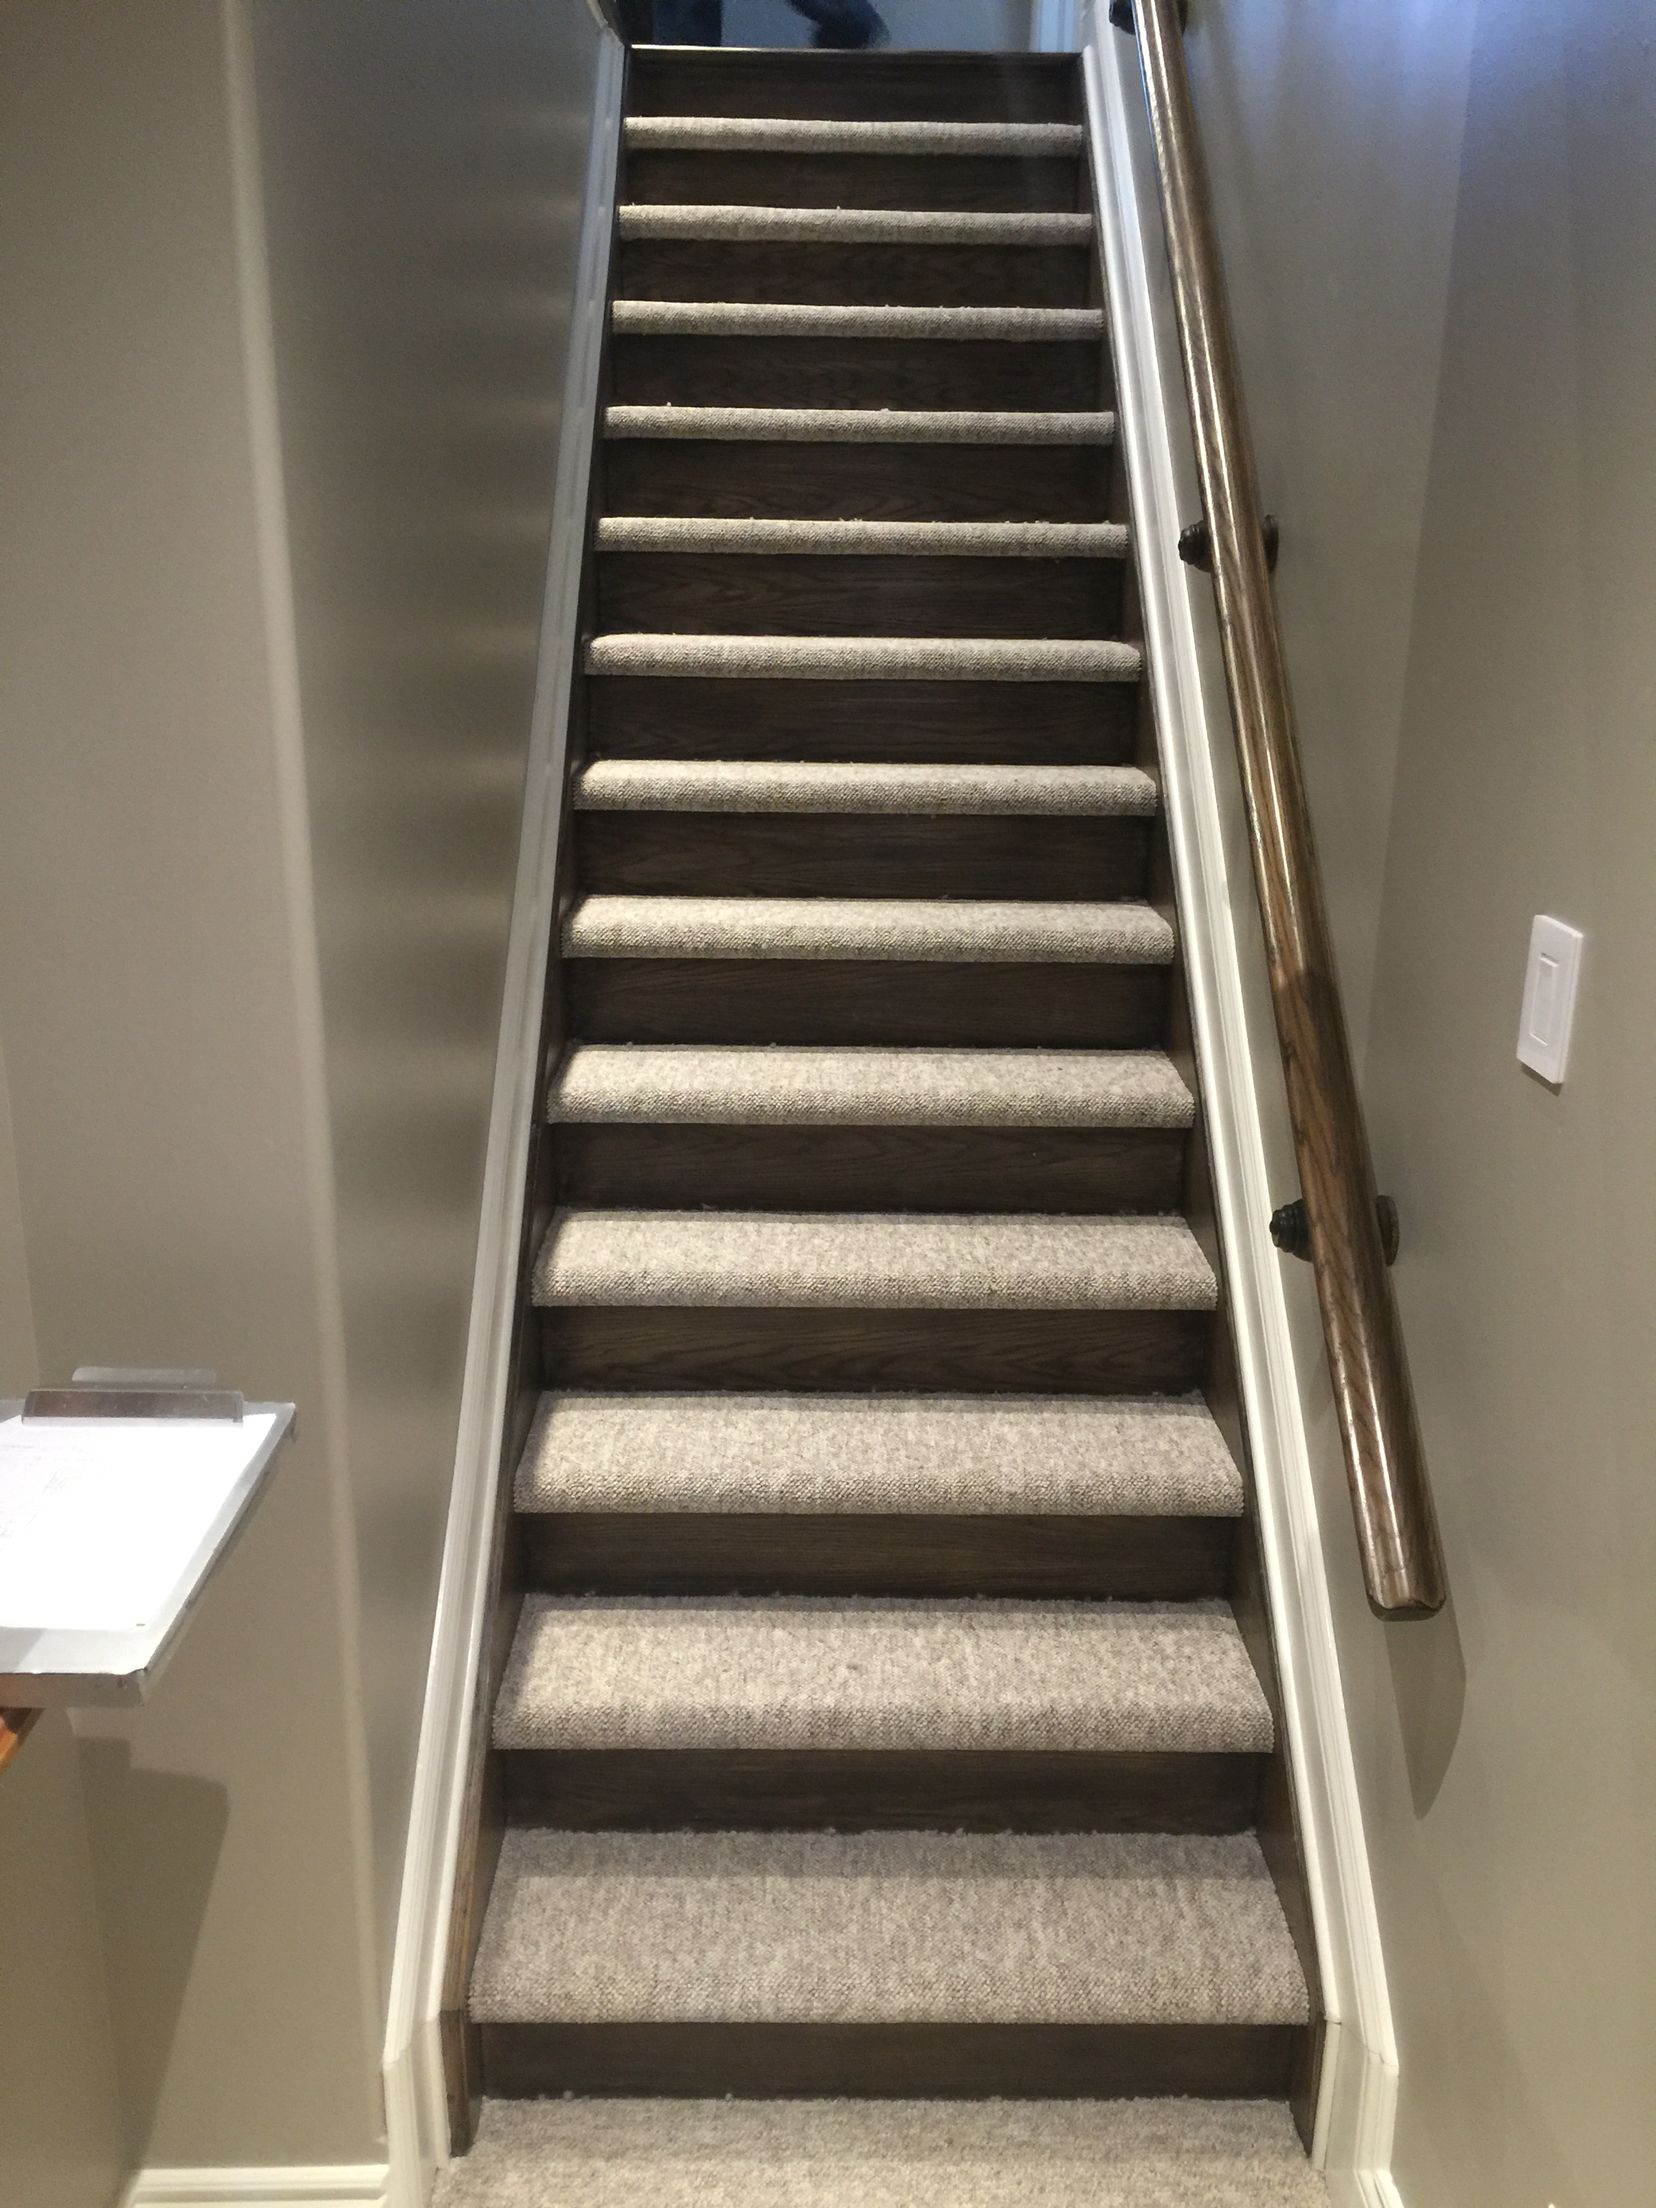 Closed Stairs, Carpet And Wood Risers Carpet Staircase, Wood Staircase,  Wood And Carpet